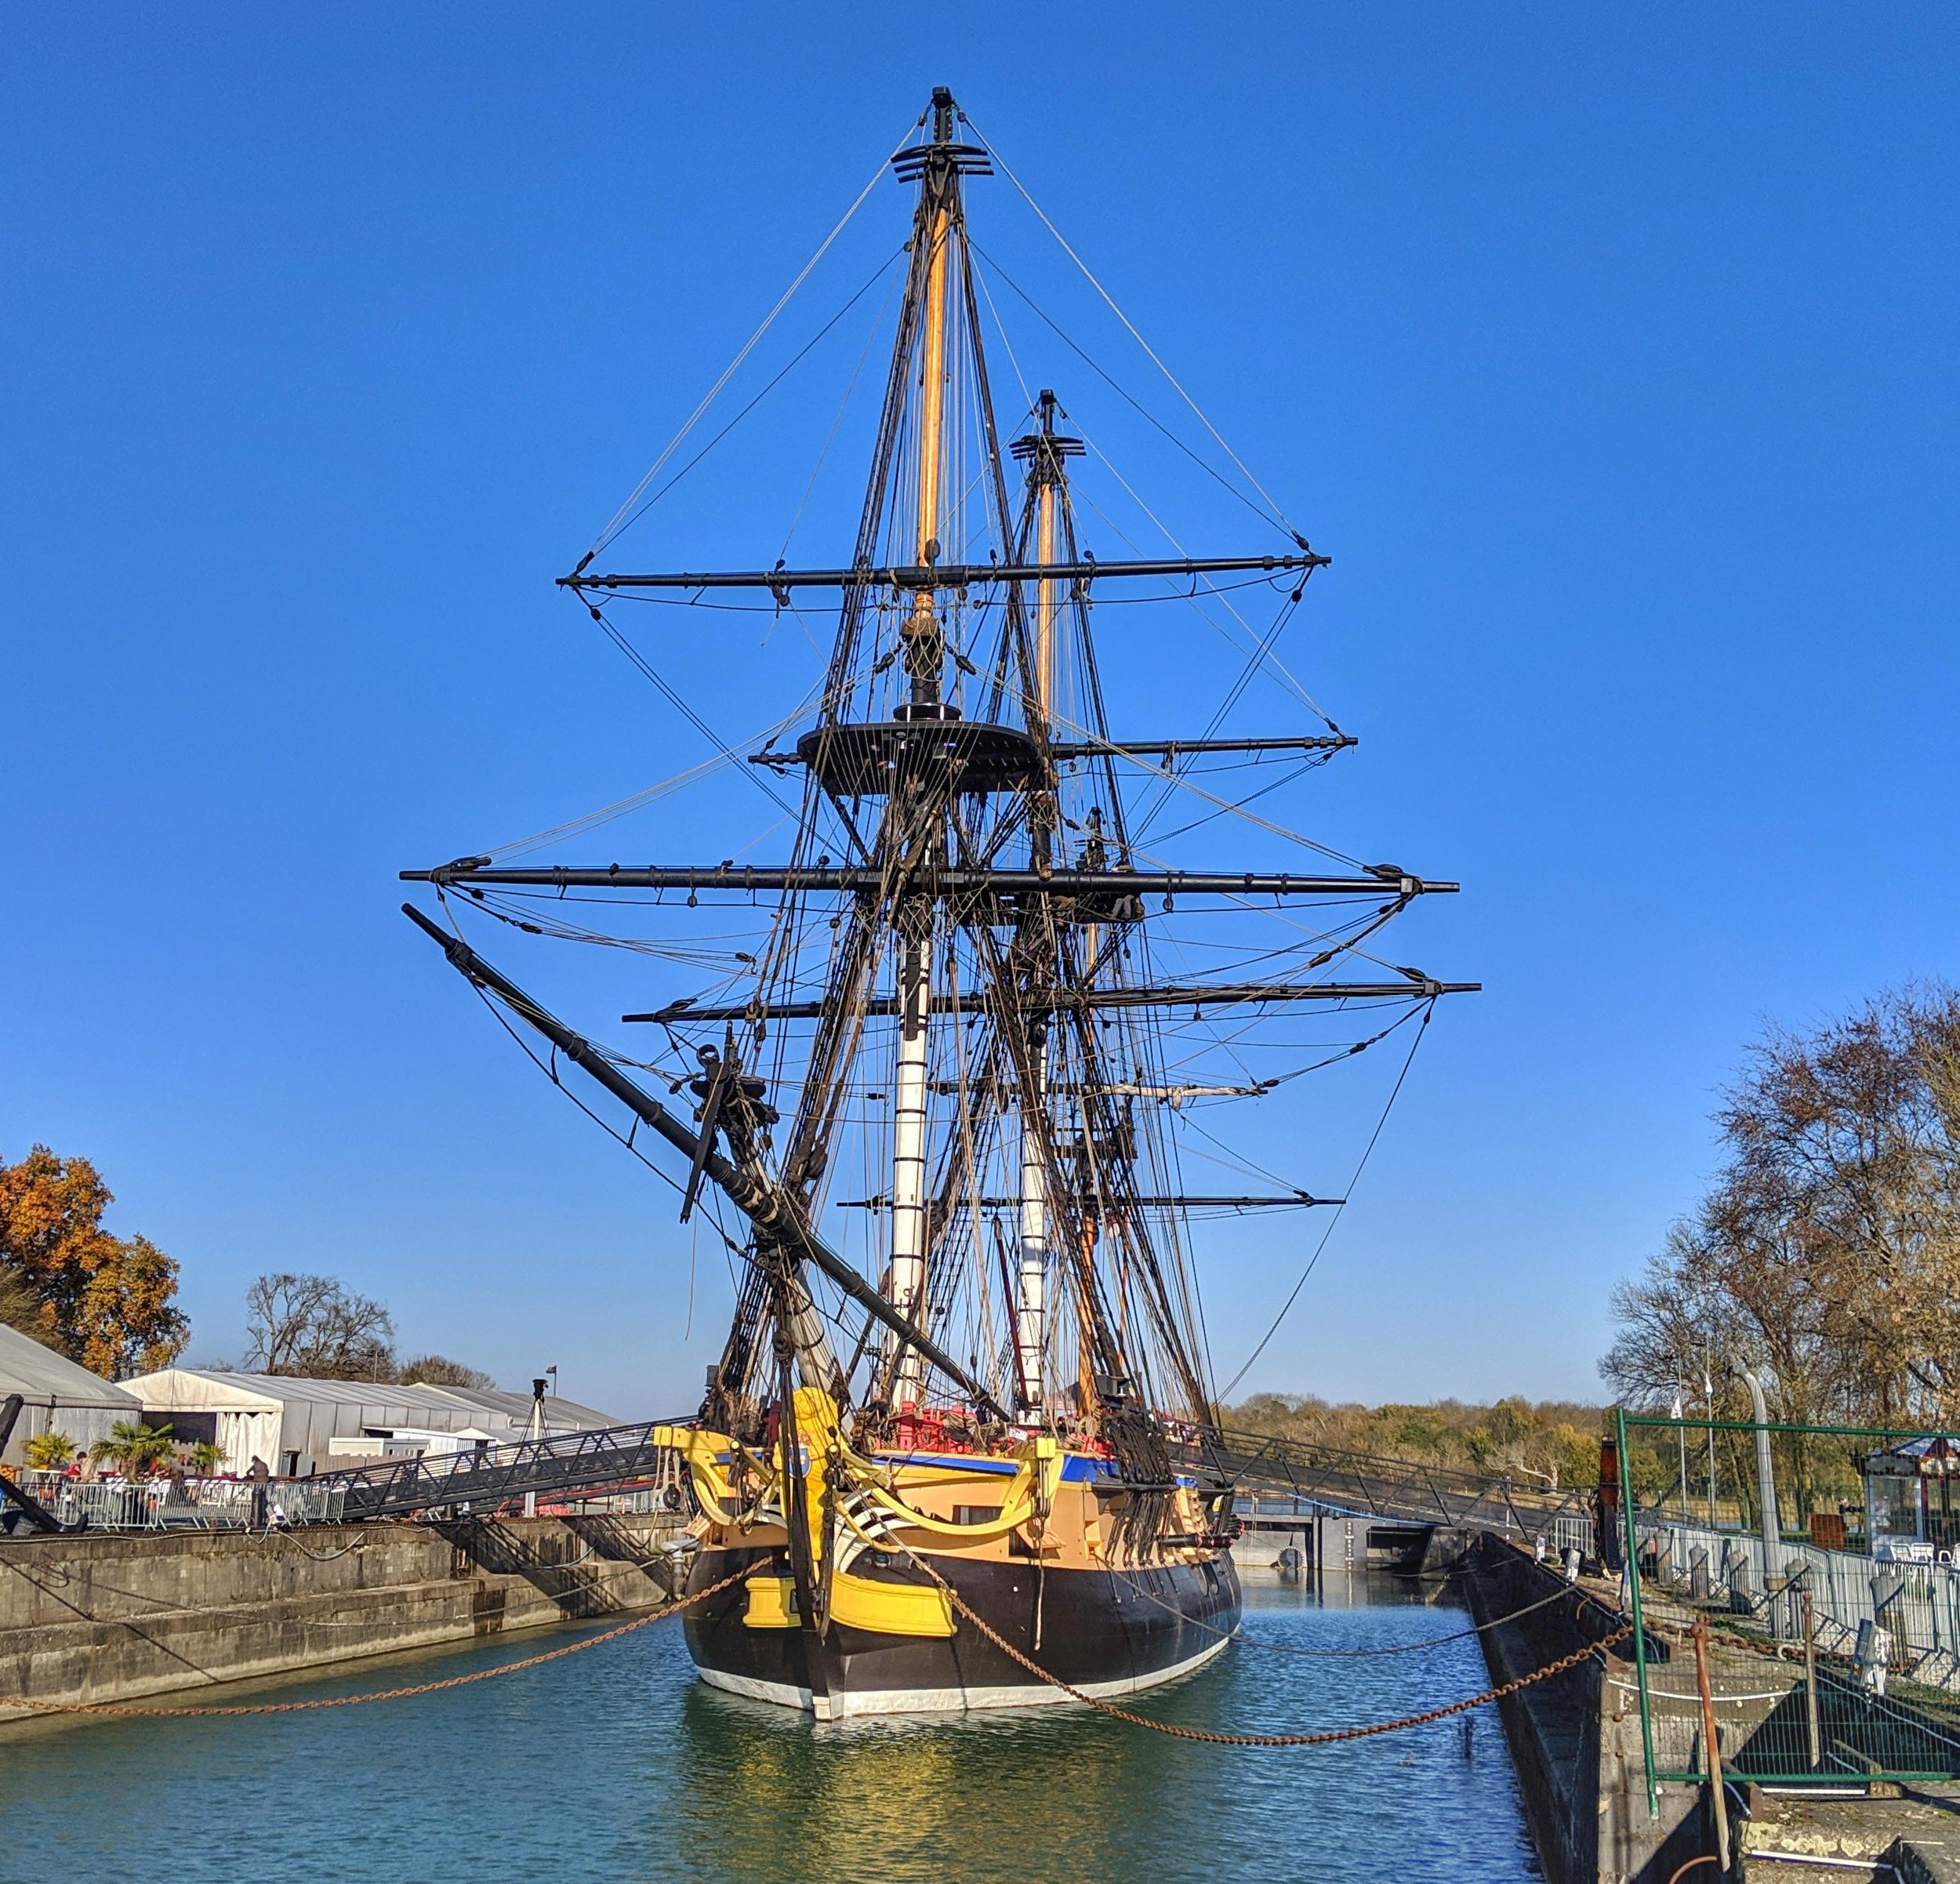 French naval ship replica Hermione in Rochefort